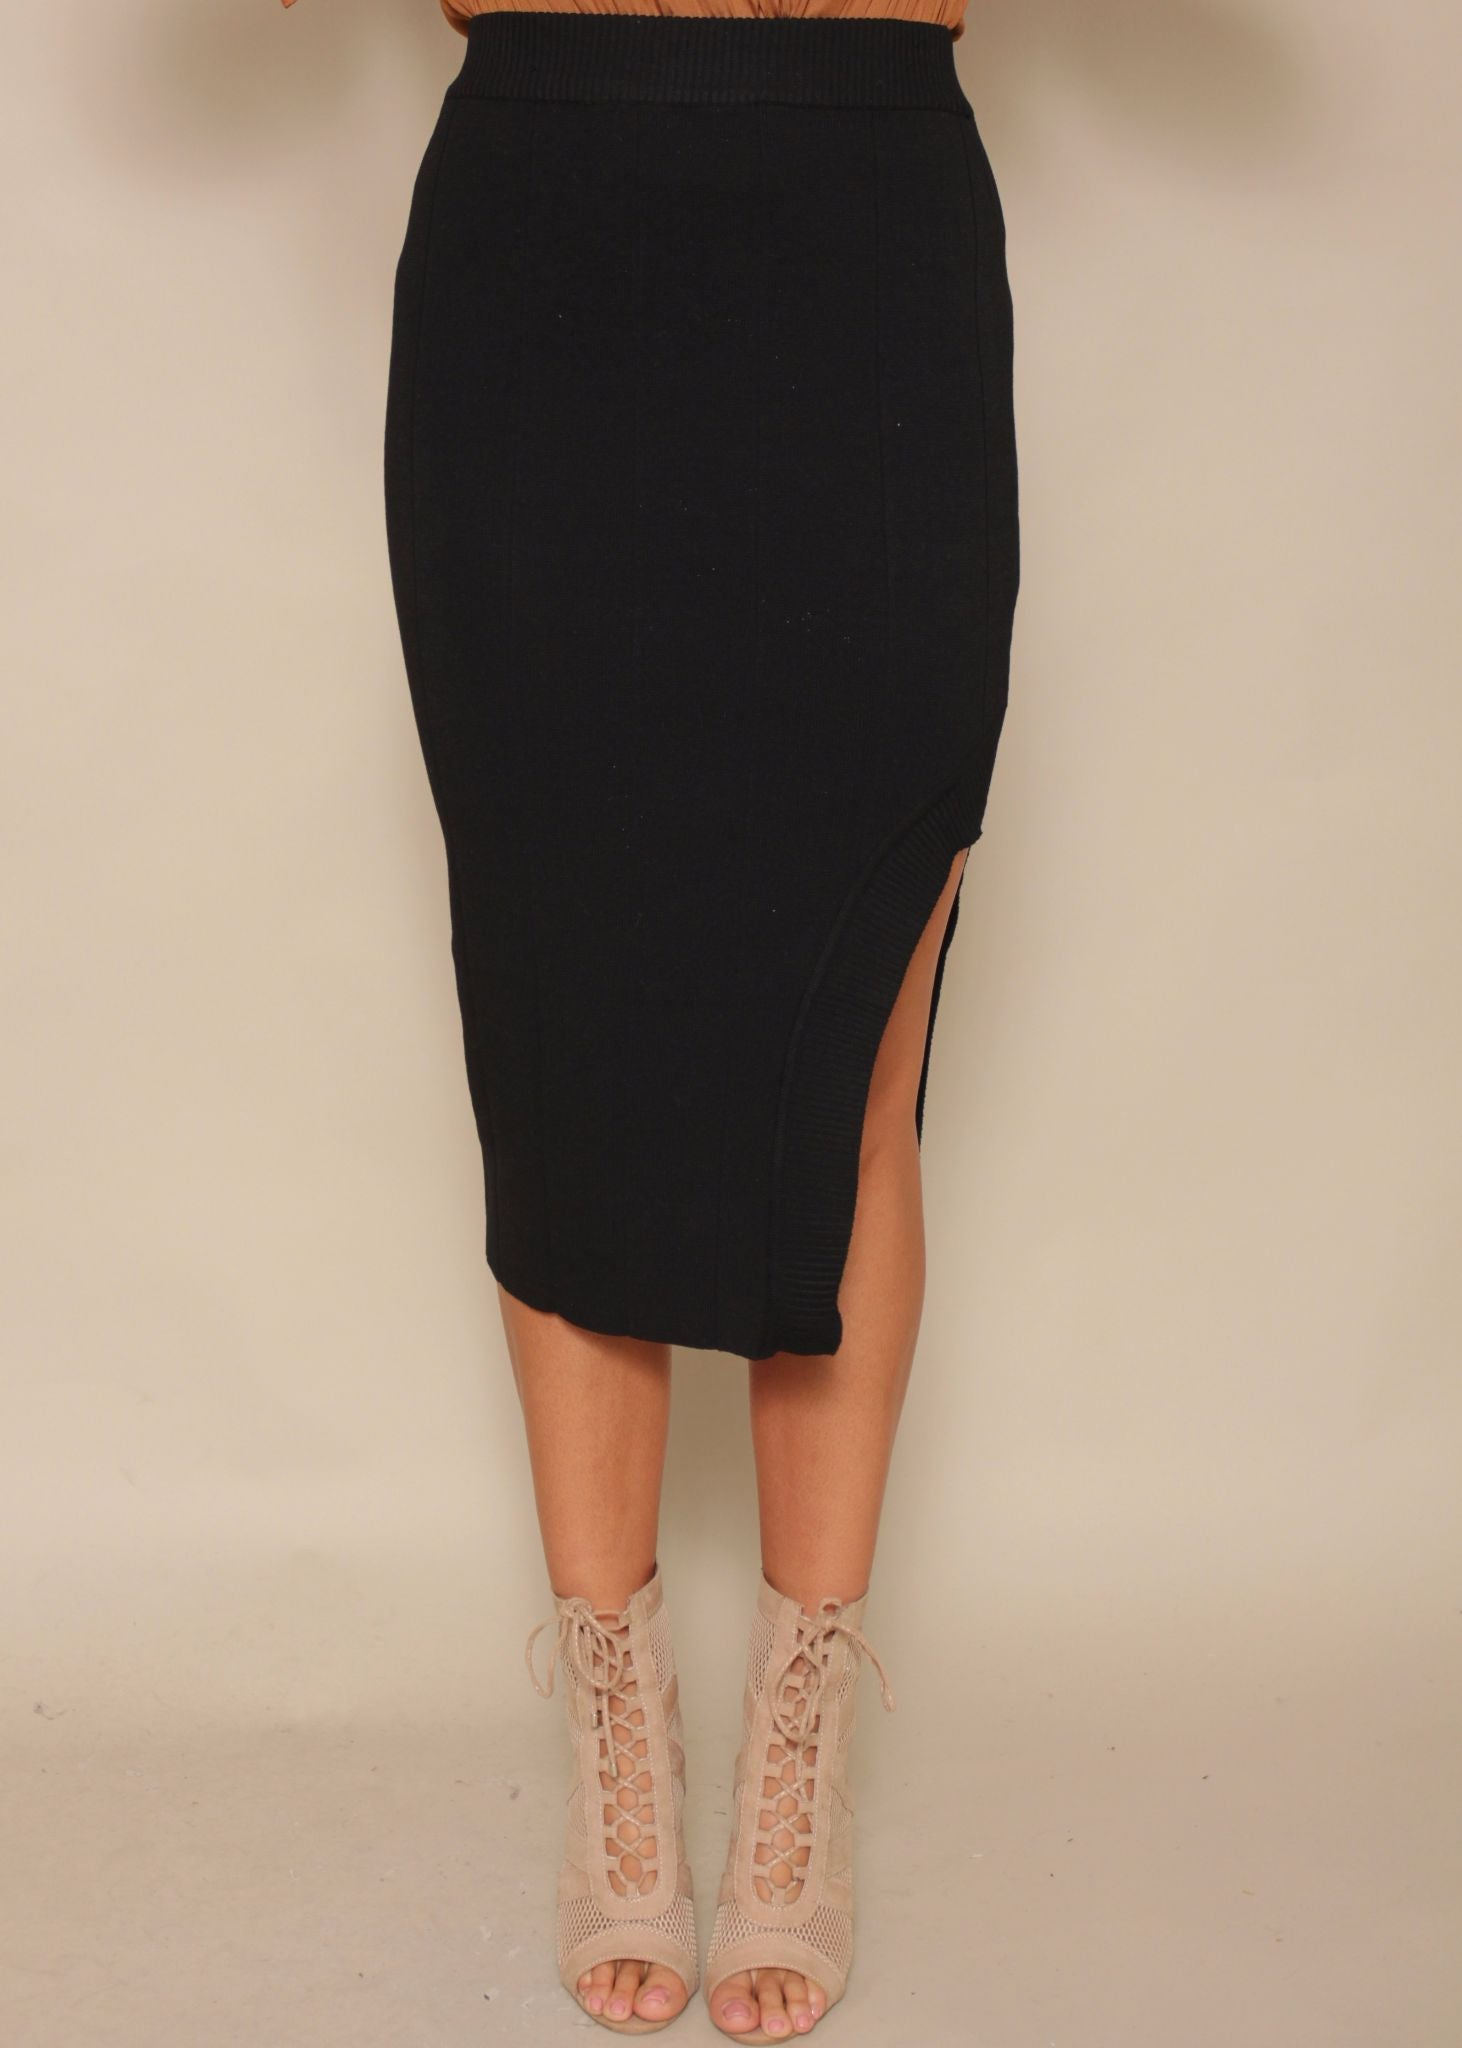 Fine Line Knit Skirt - Black